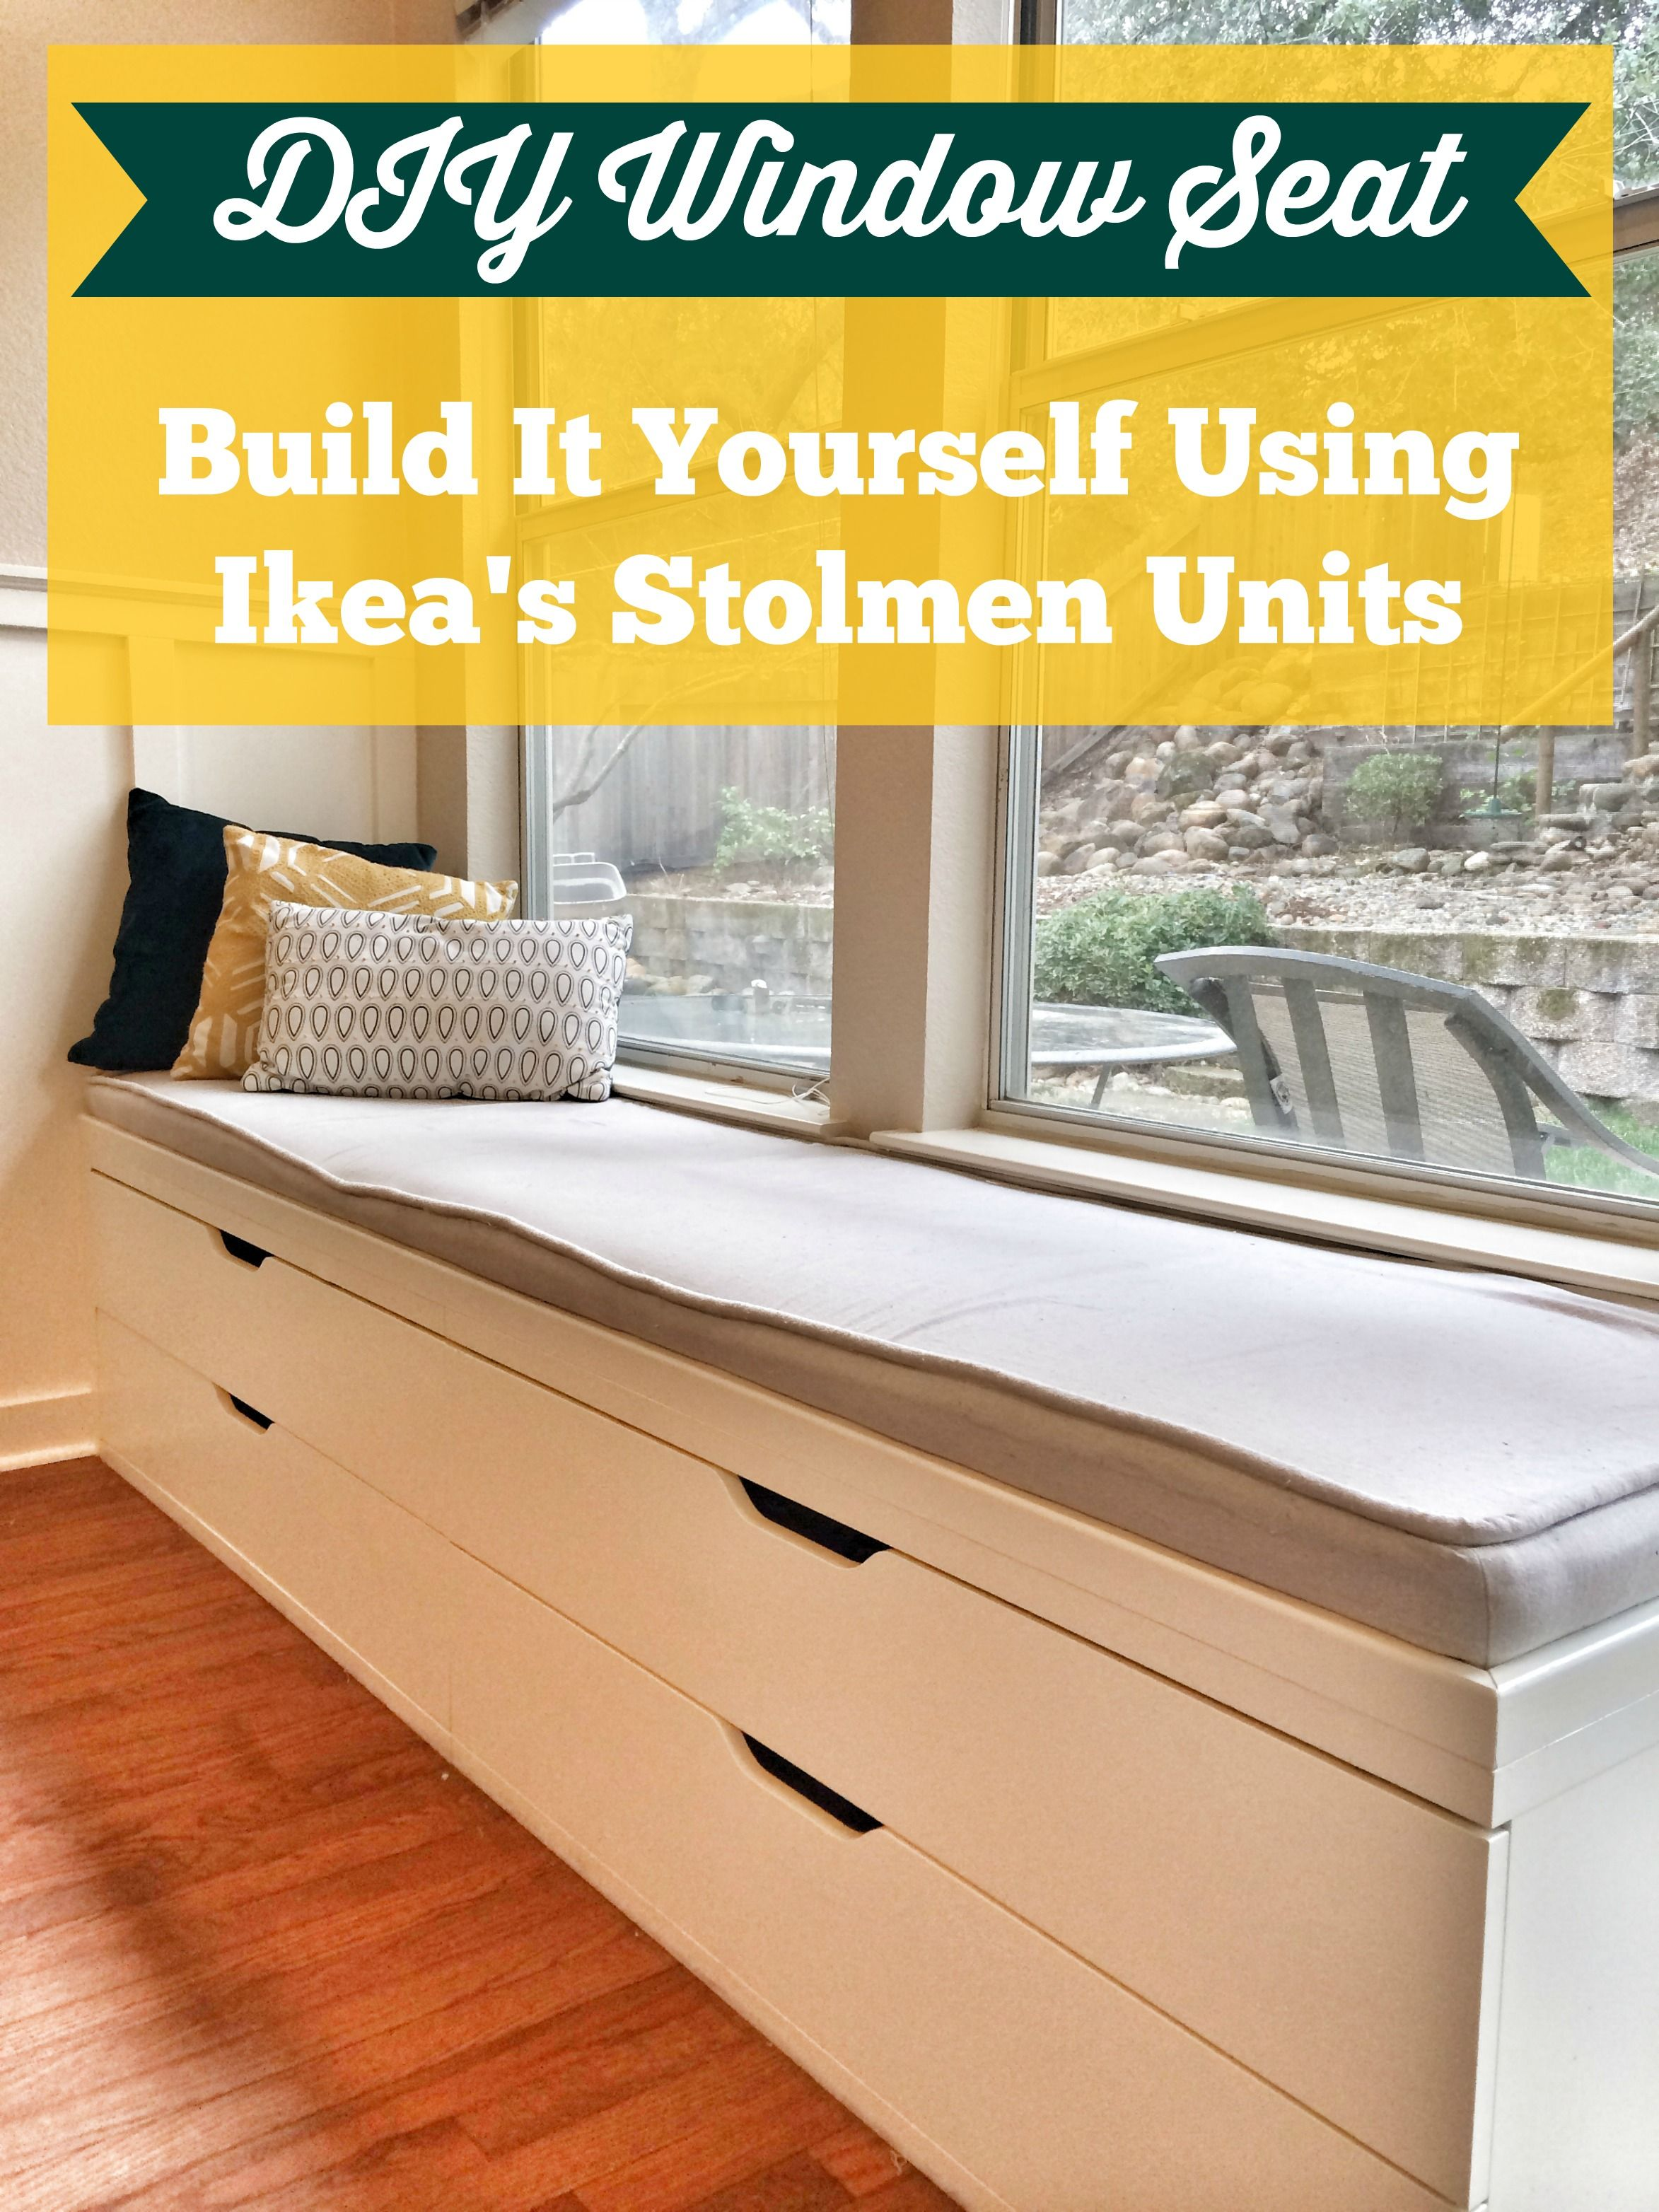 Kitchen bench dining kitchen diy banquette bench using ikea cabinets - Diy Window Seat From Ikea Stolmen Drawers A Better Depth Than Kitchen Cabinets And